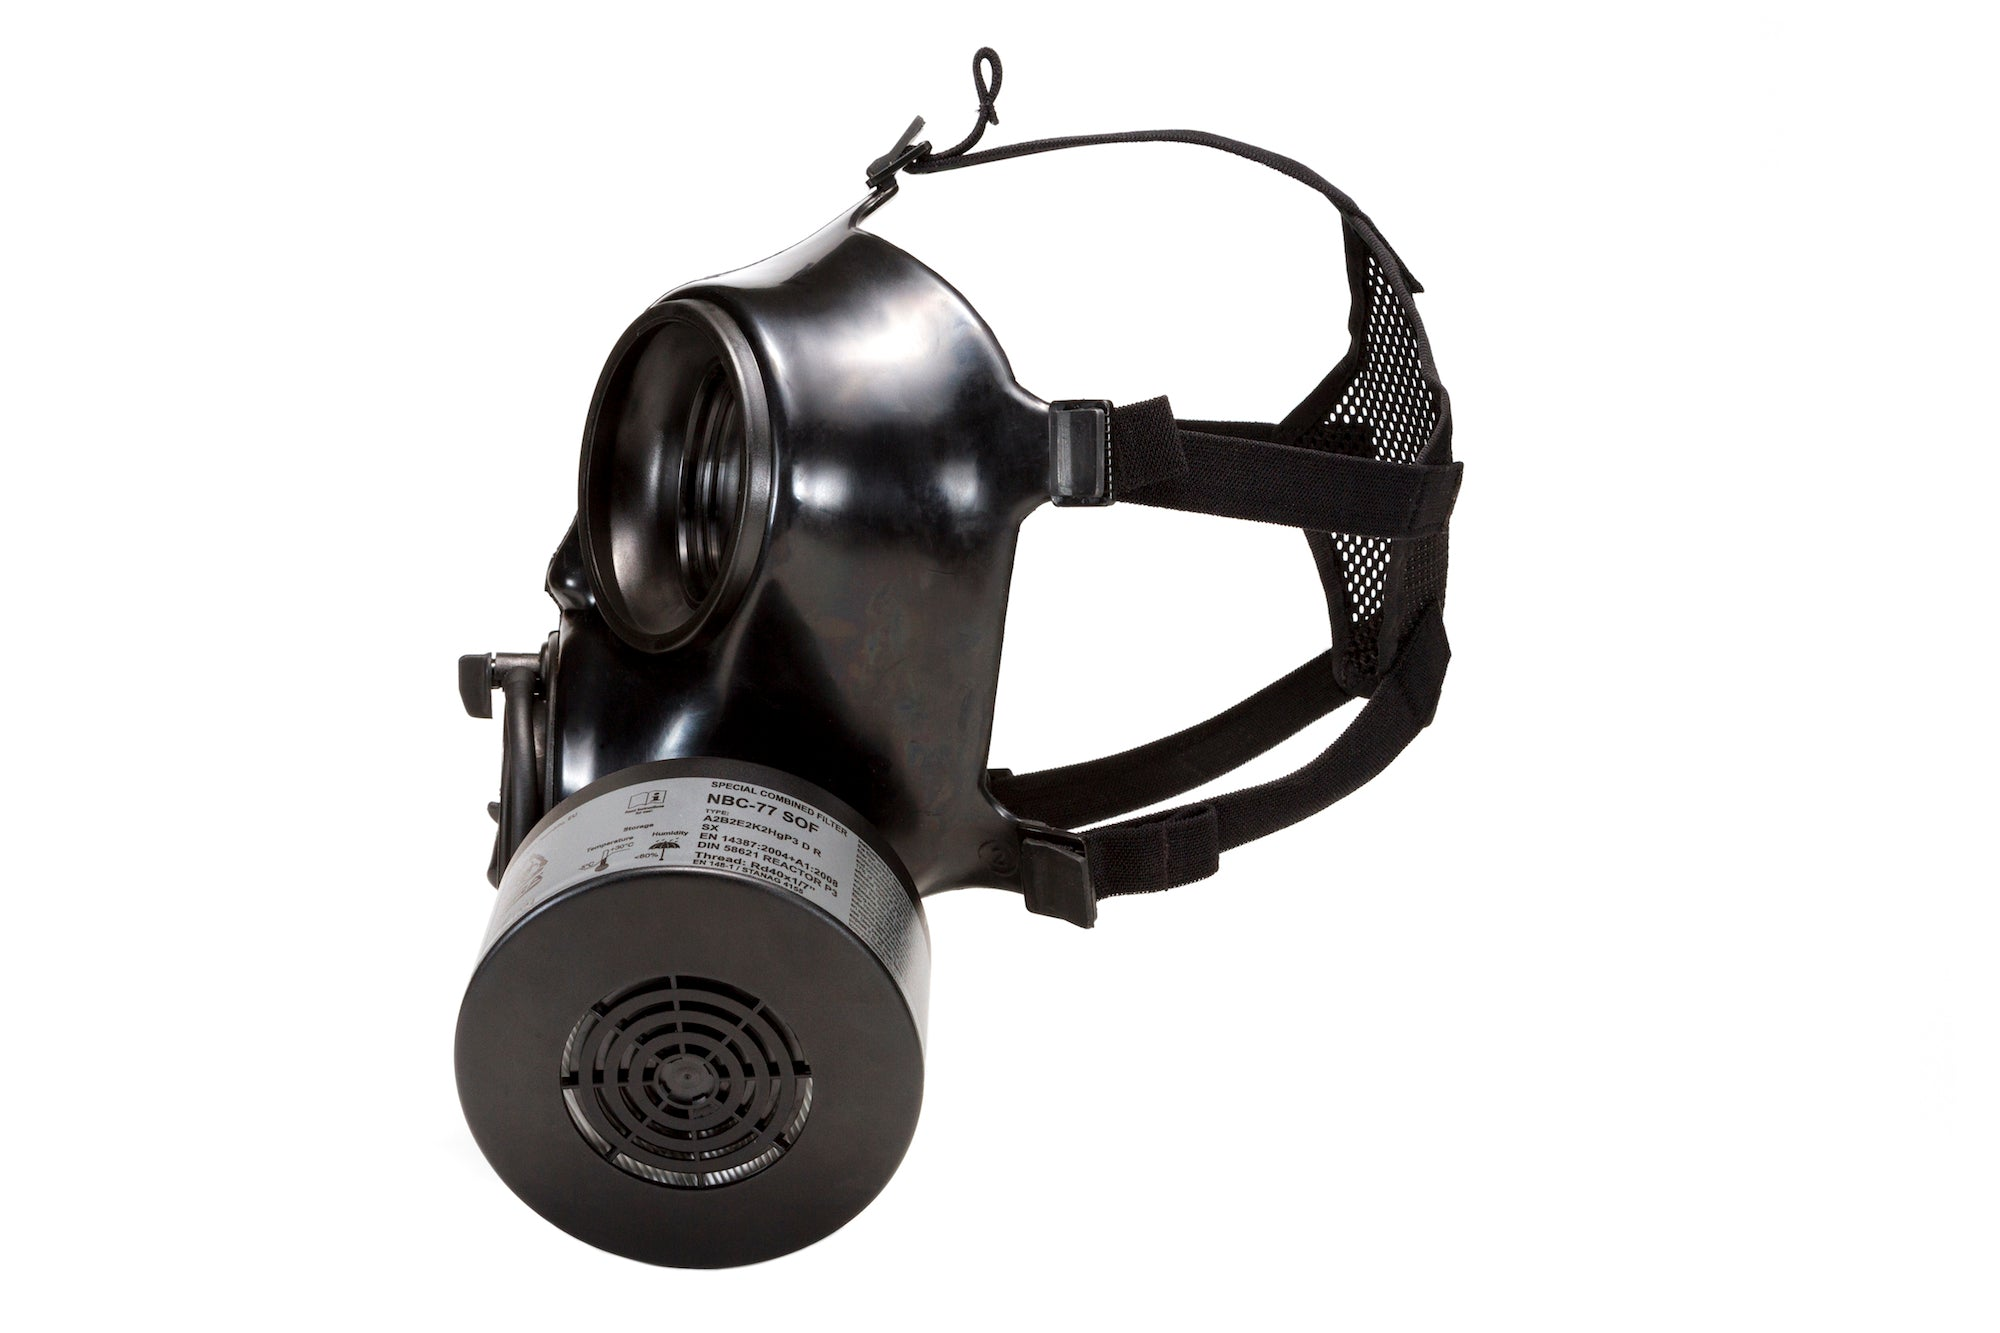 Side view of the CM-7M Military Gas Mask with a CBRN filter